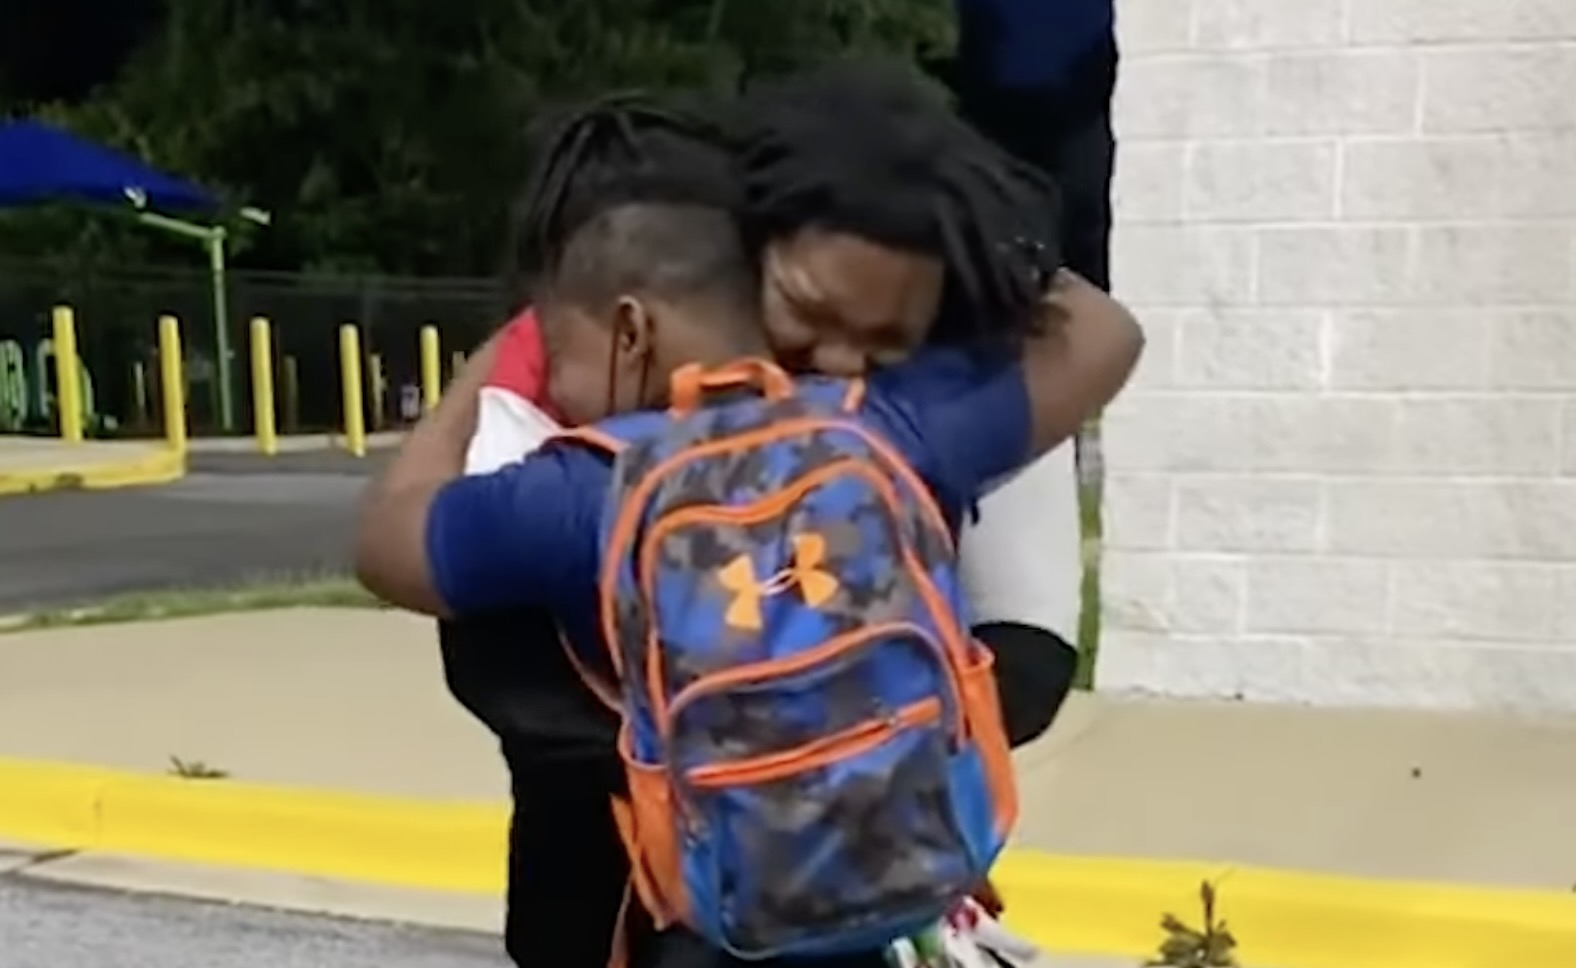 WATCH: Maryland Father Has Tearful Reunion With 12-Year-Old Son After Being Released from Jail